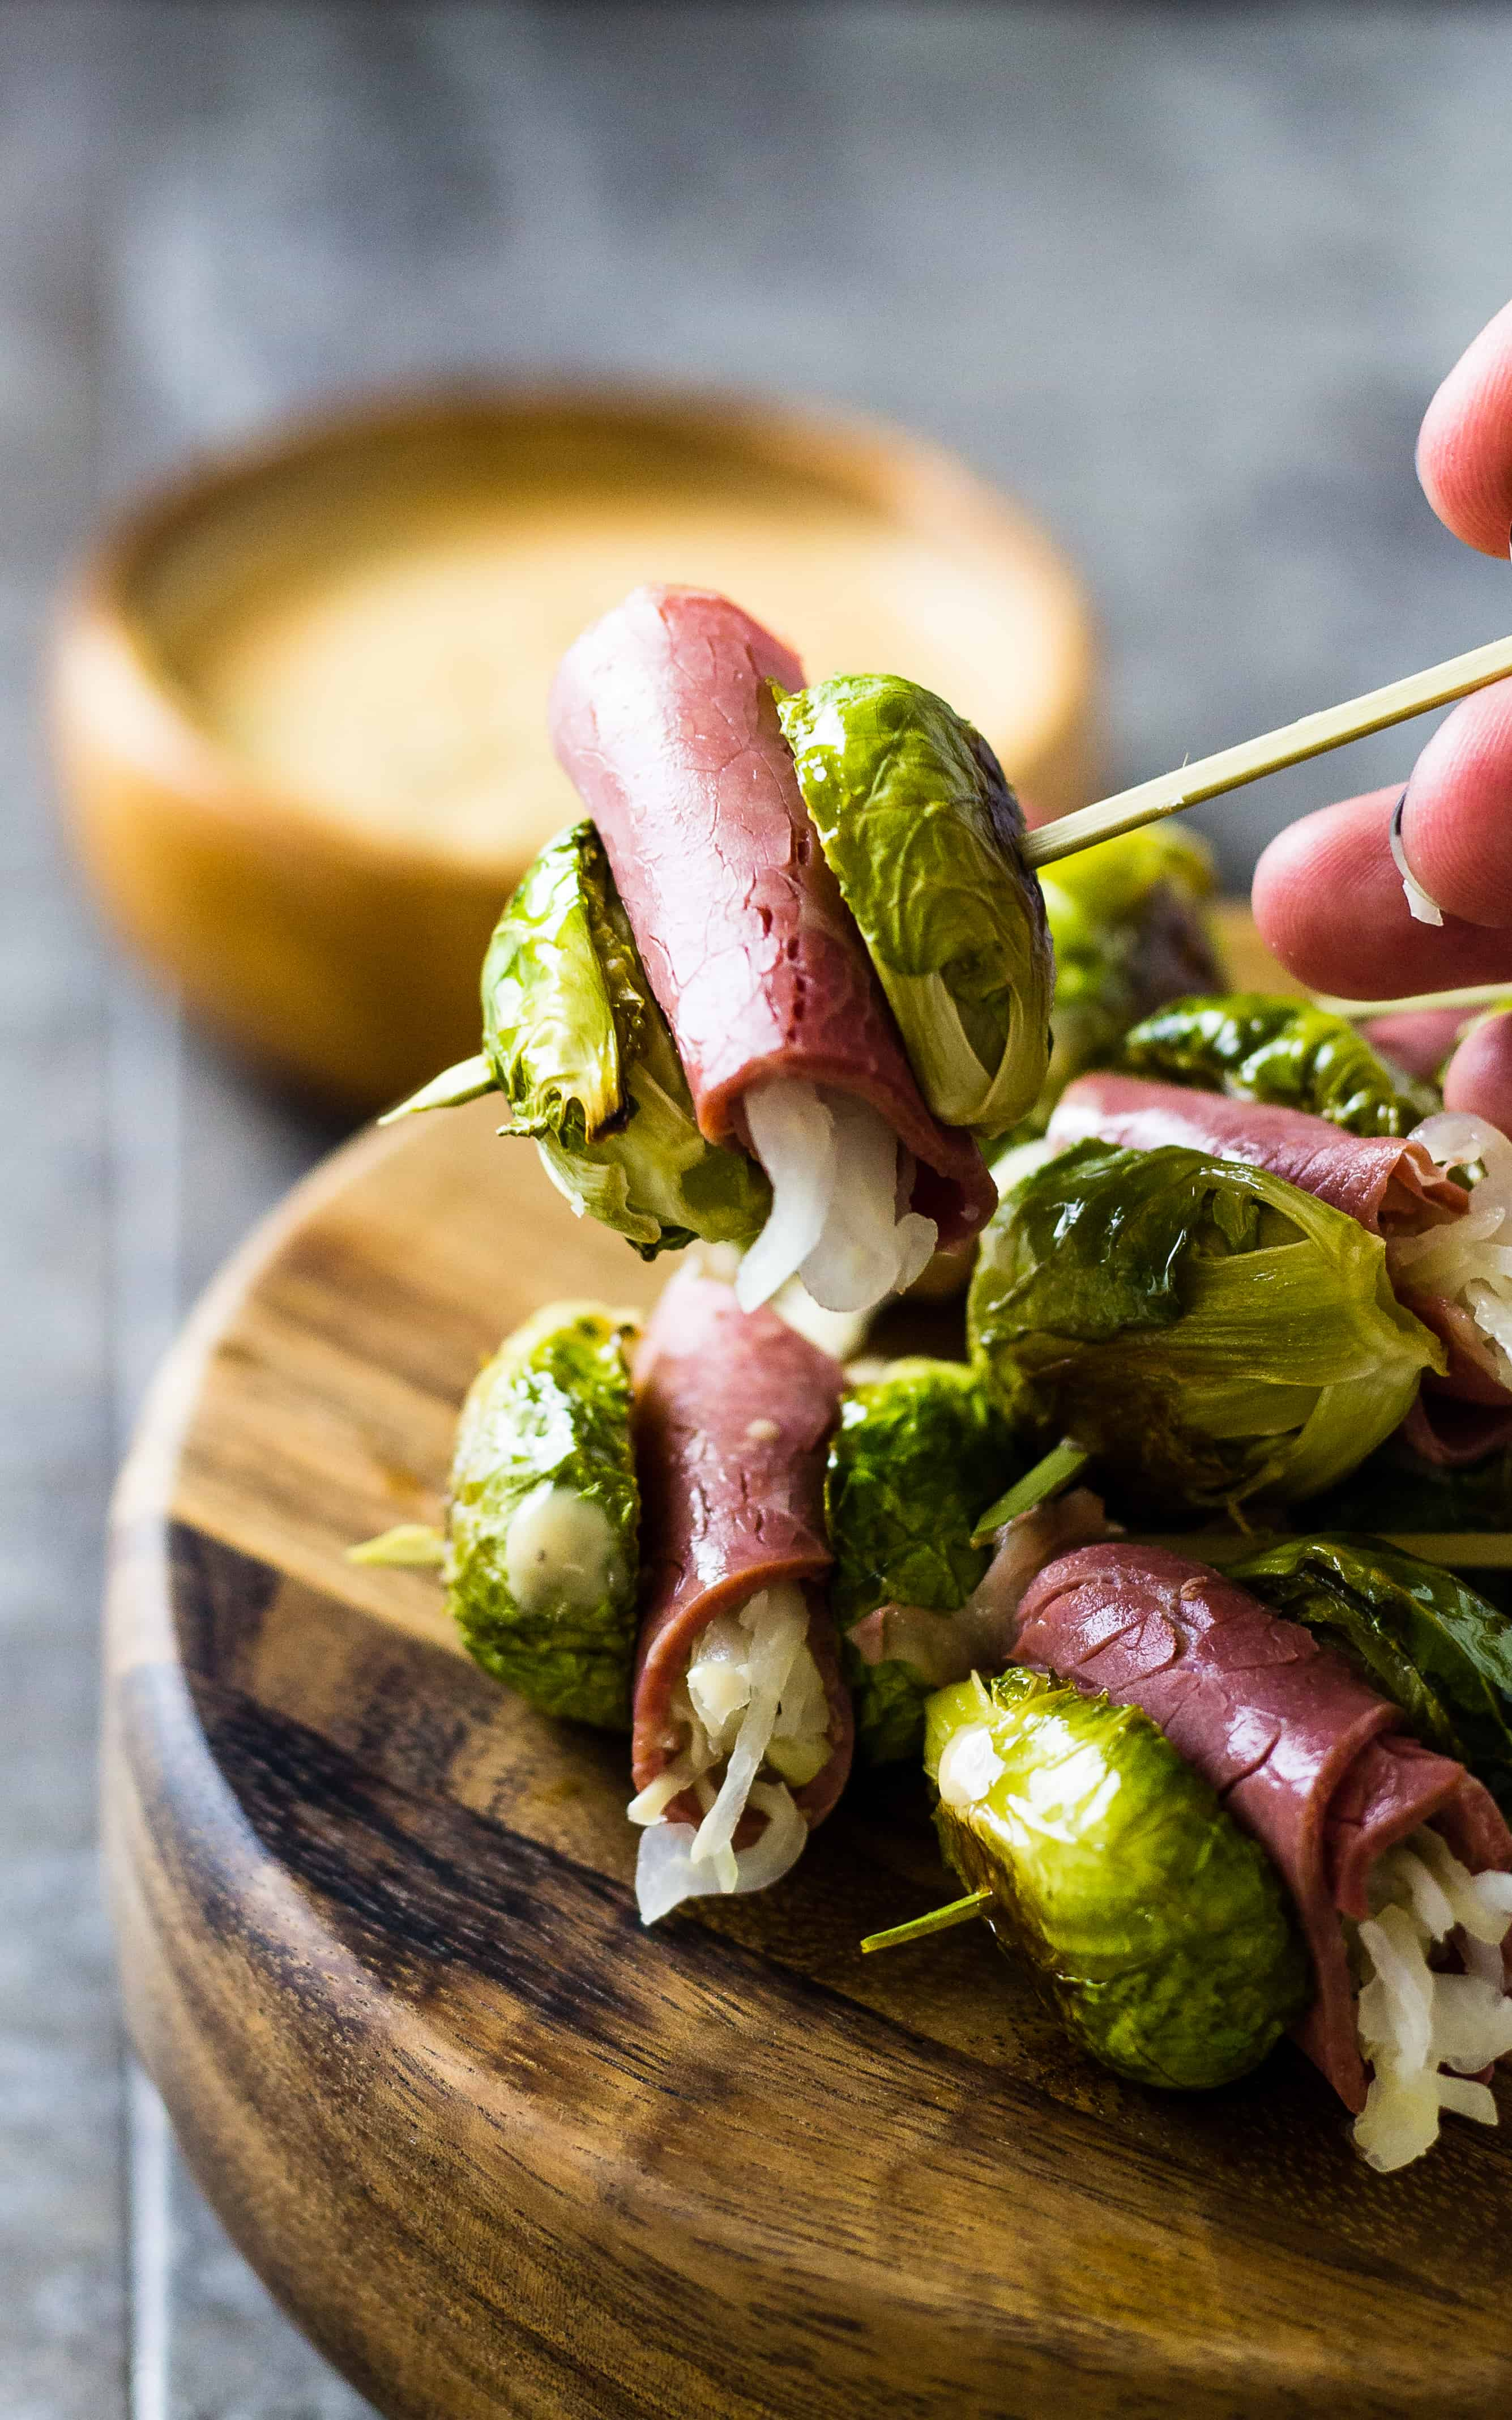 Reuben Skewers - Corned Beef Sliders with Sprouts | Take Two Tapas | #Reuben #Skewers #sliders #StPatrickDay #Sprouts #sauerkraut